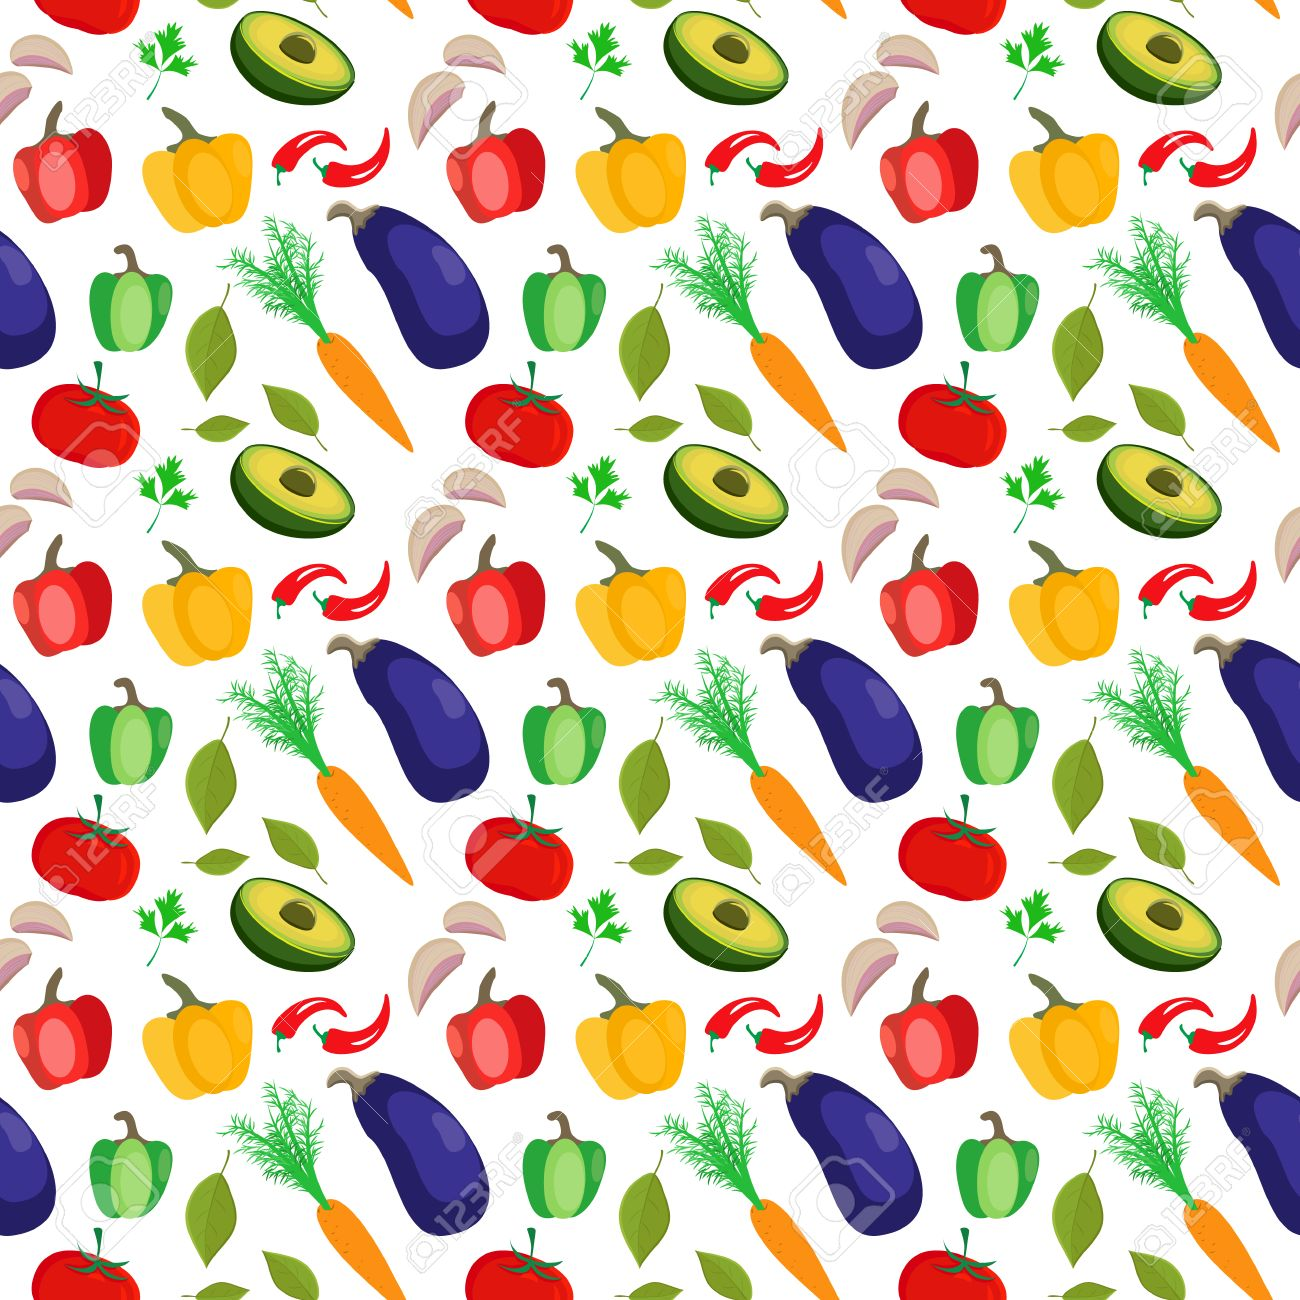 Scrapbook paper cooking - Cool Modern Background For Web Wallpapers Packaging Bag Prints Textile Wrapping Paper And Digital Scrapbook Cooking Healthy Eating Theme